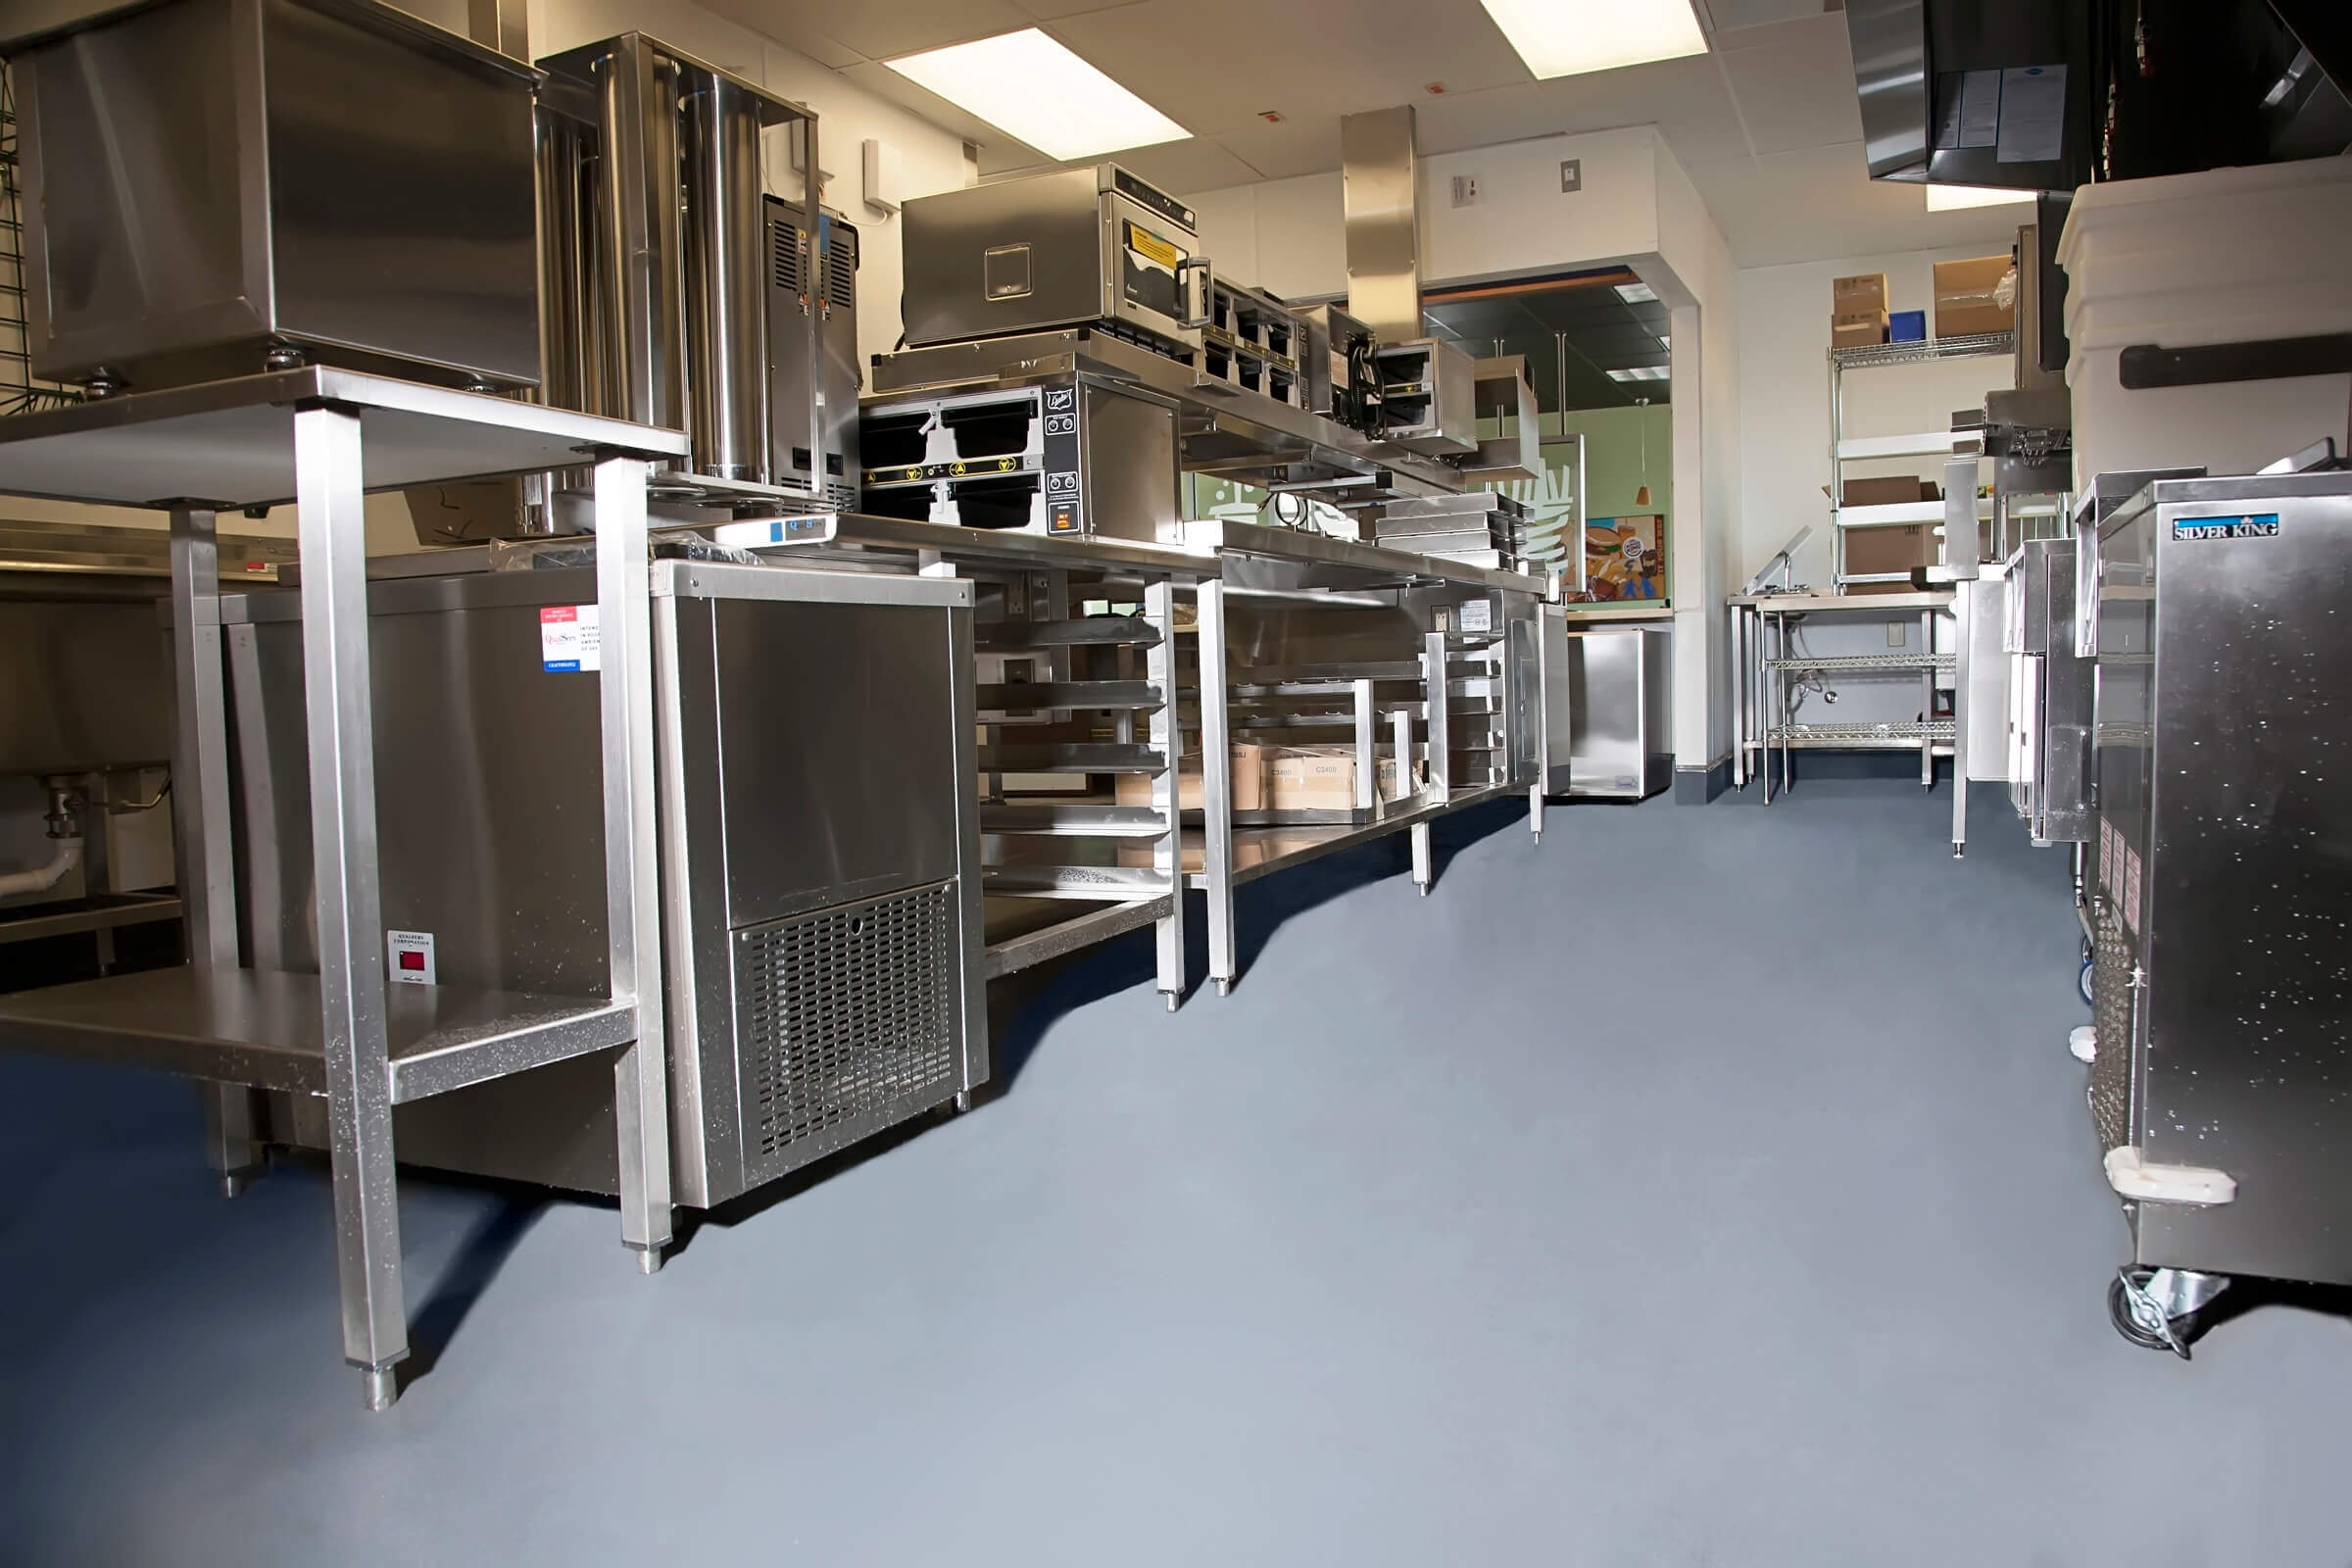 Commercial Kitchen Flooring Epoxy U0026 Stained Concrete| Industrial Flooring  For Restaurants, Kitchens.